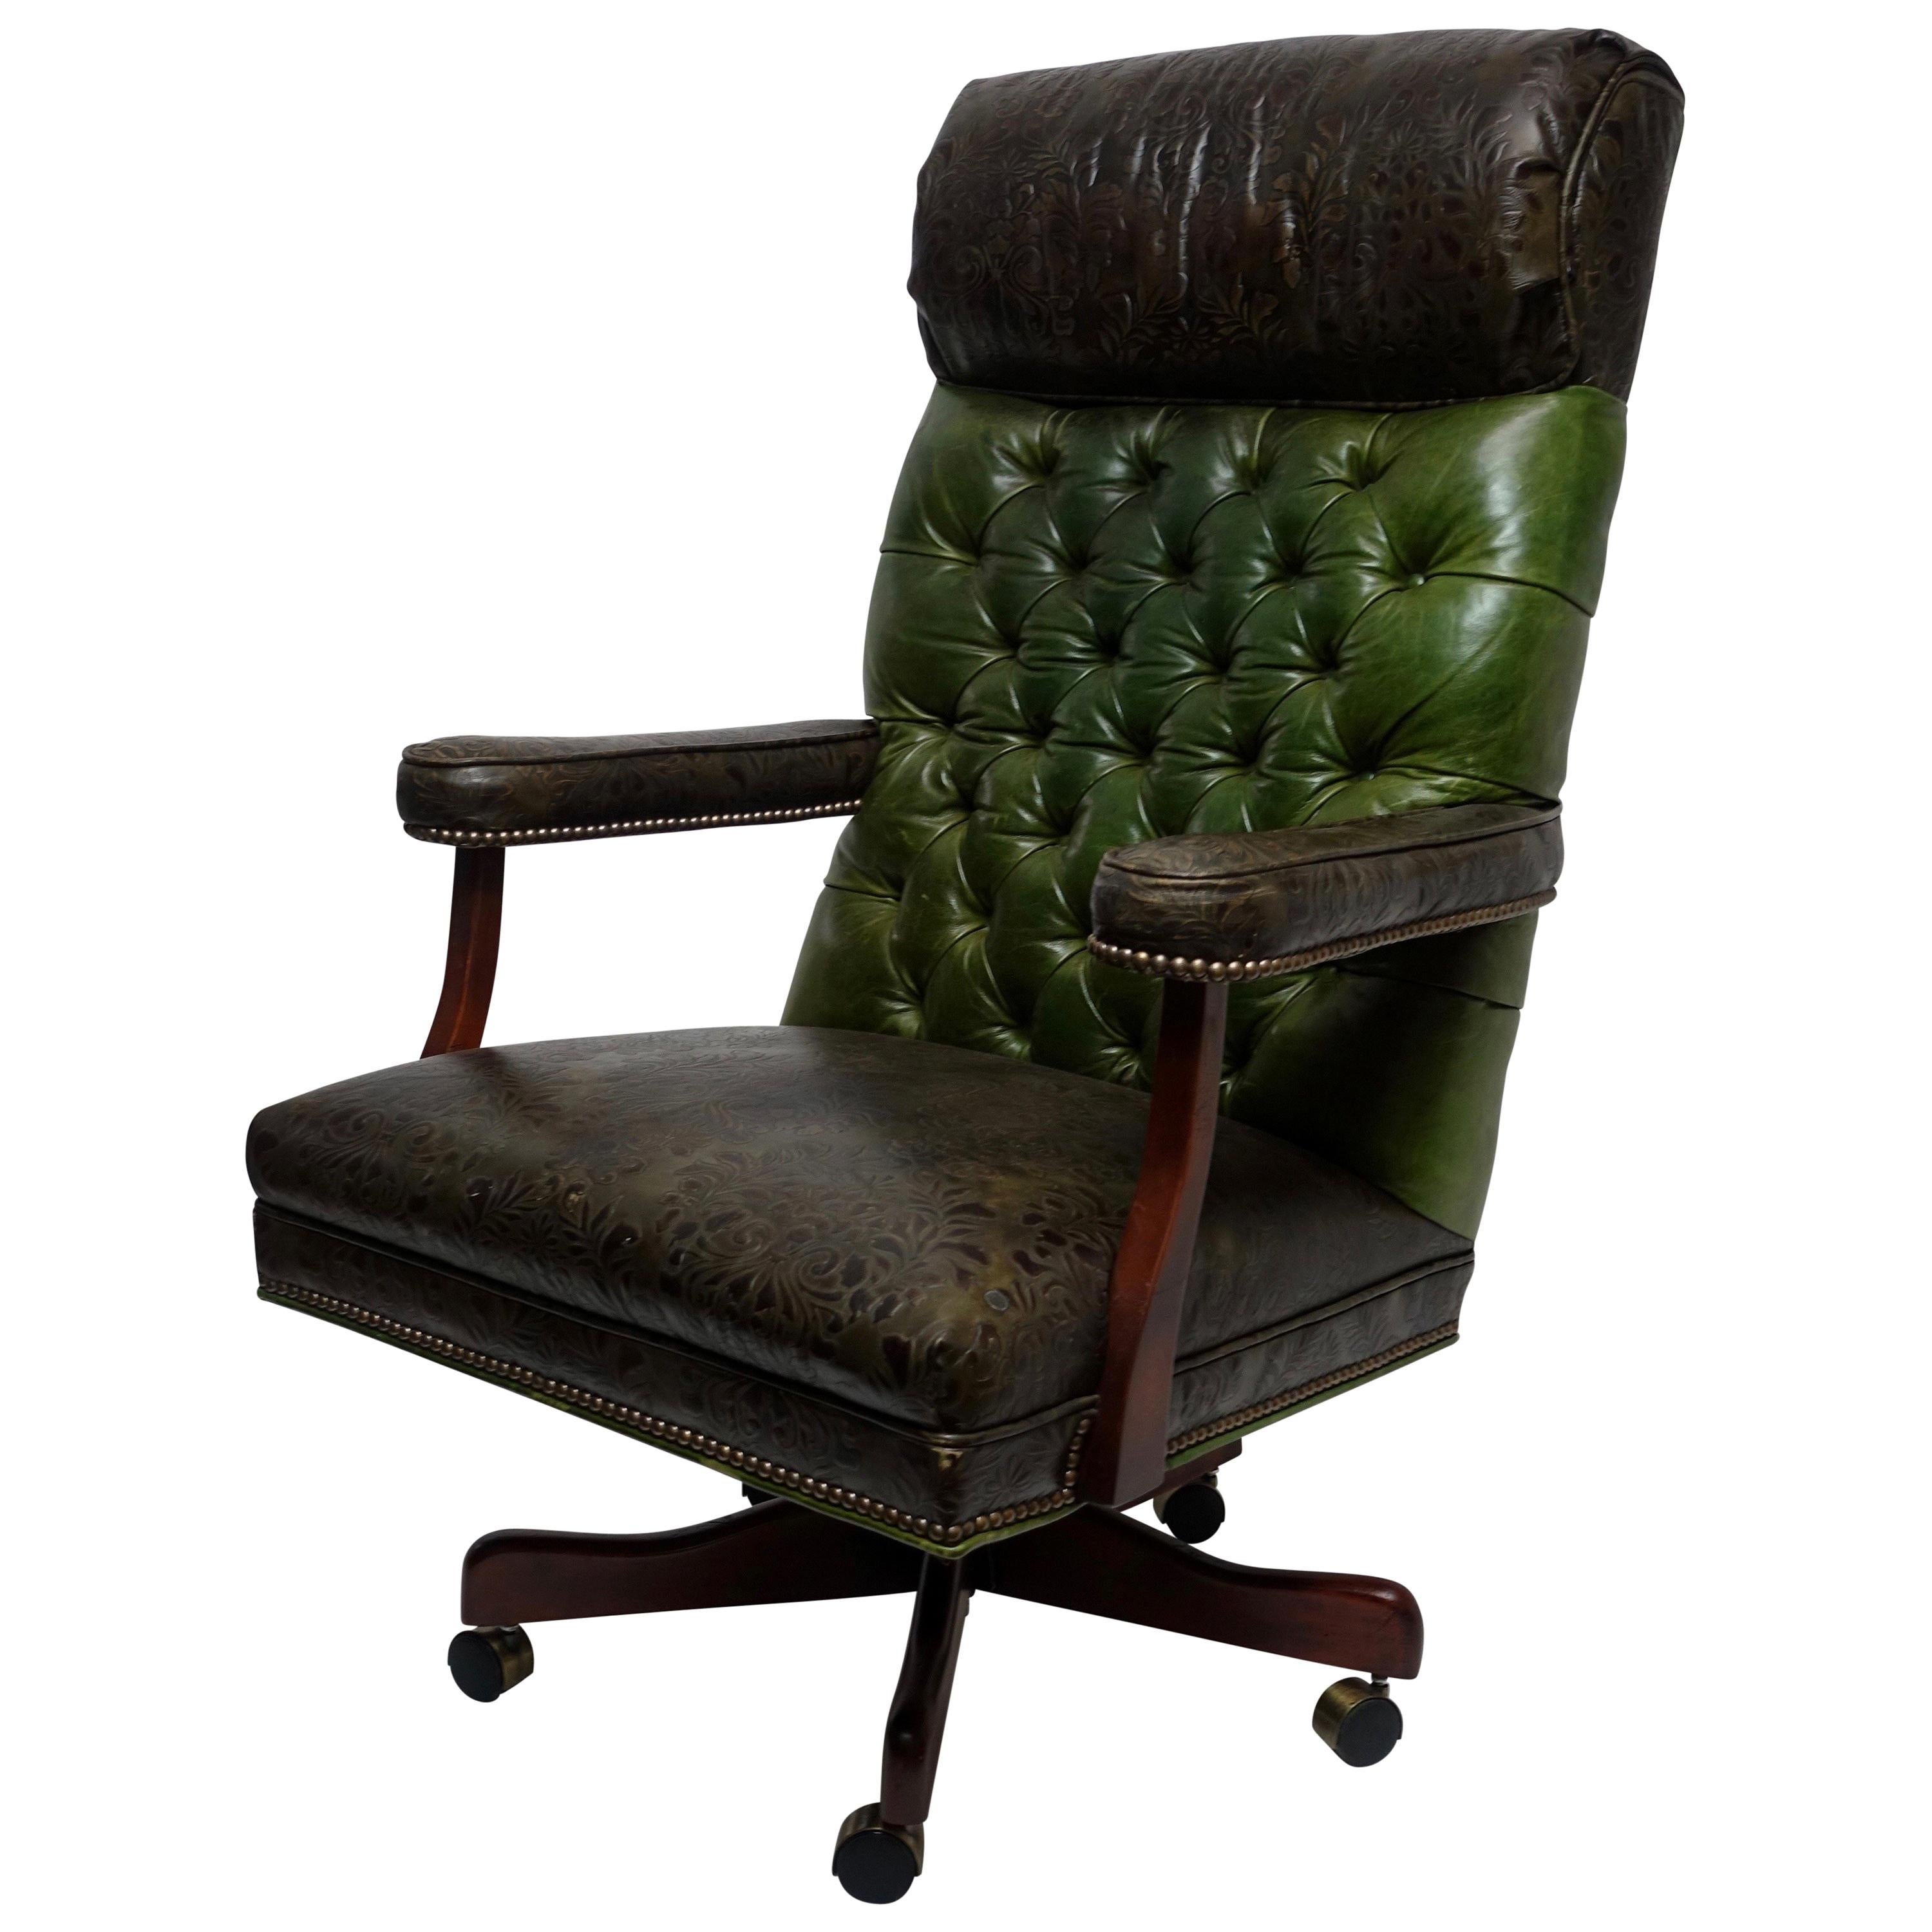 Strange Vintage Executive Leather Office Desk Library Chair Gamerscity Chair Design For Home Gamerscityorg